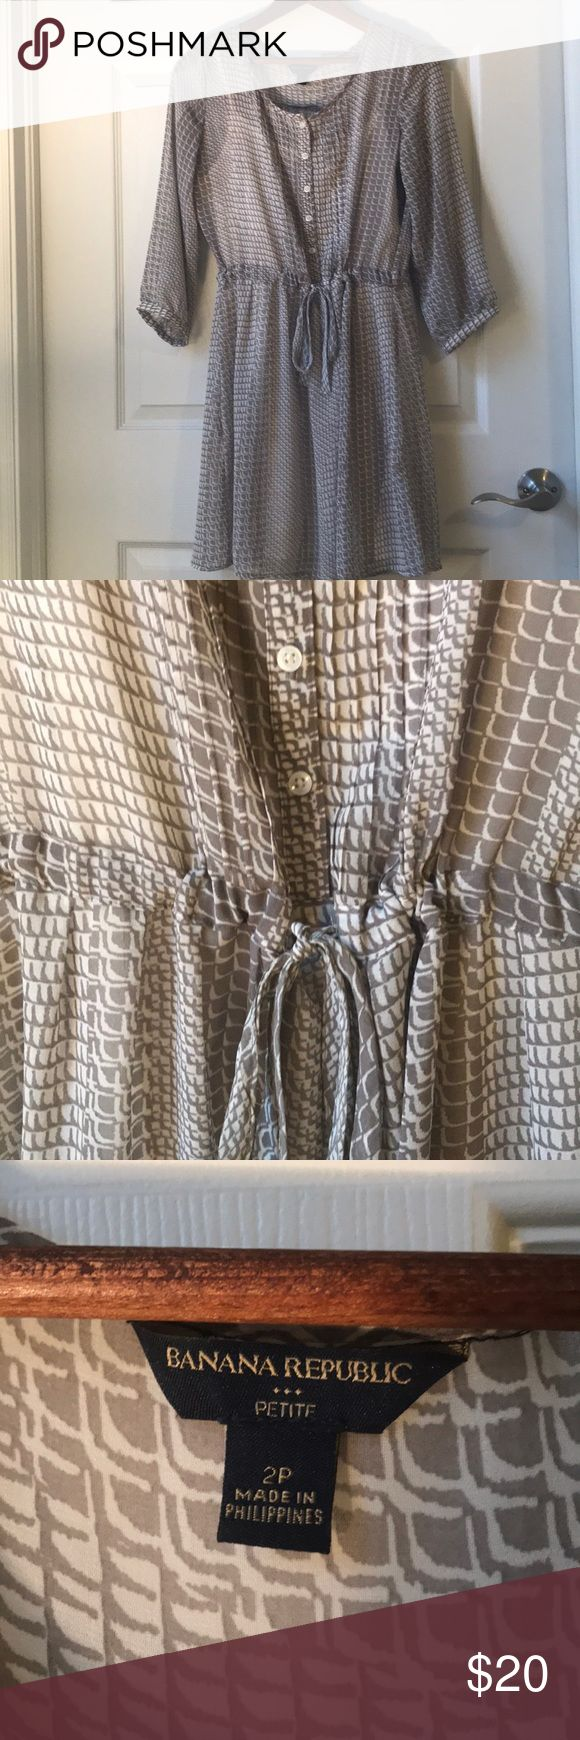 Banana Republic 3/4 Sleeve Dress Detached slip comes in handy  Used condition  Dress is in good condition  slip shows signs of wear   🛍 Make an offer or bundle for a discount 🛍 Banana Republic Dresses